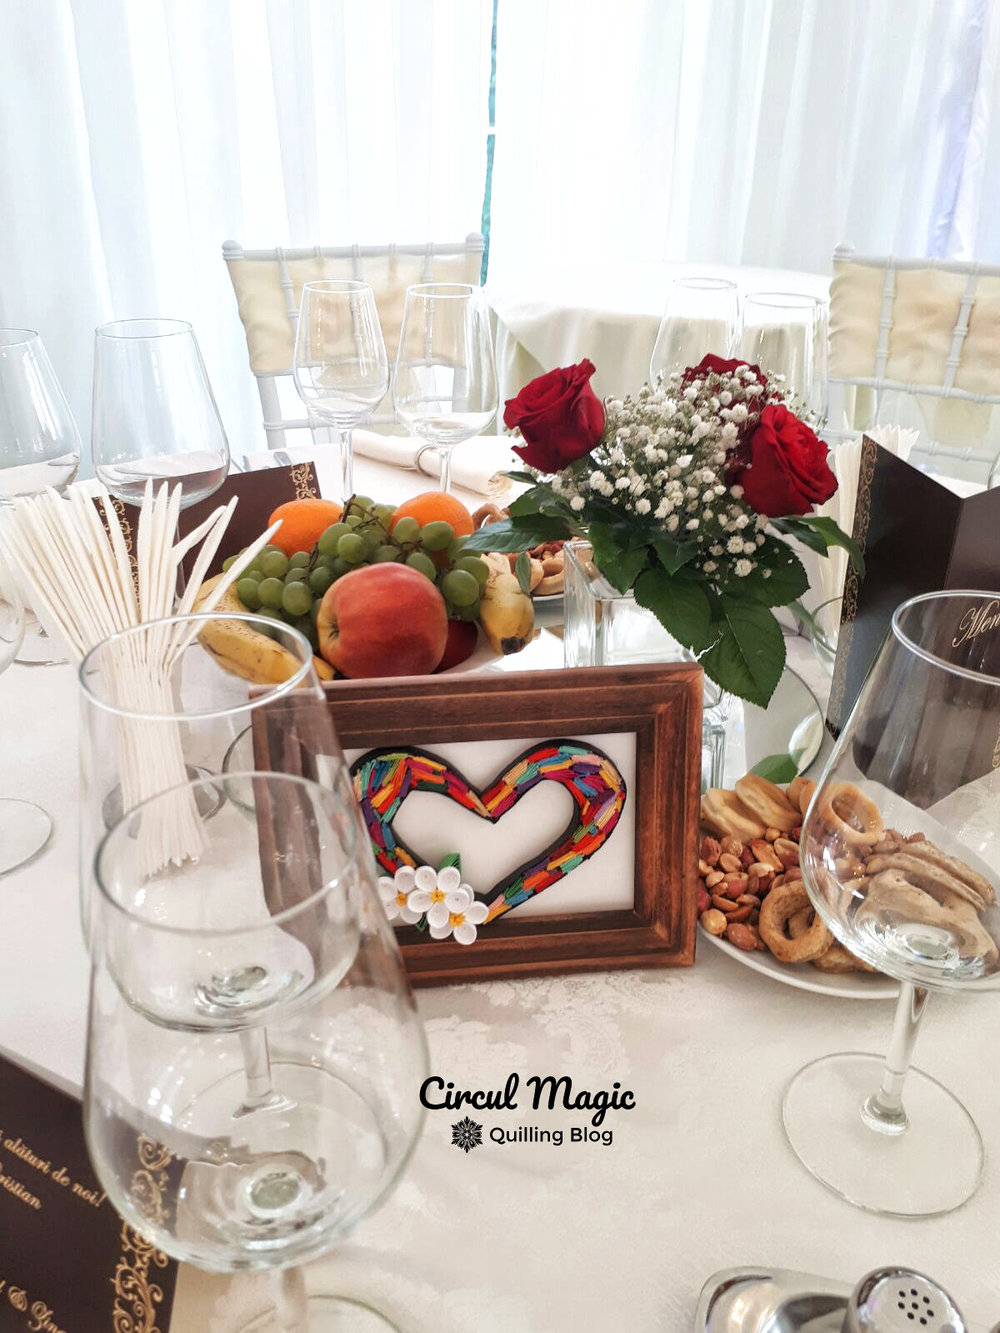 Quilling Handmade Paper Table Wedding Numbers - Circul Magic Blog